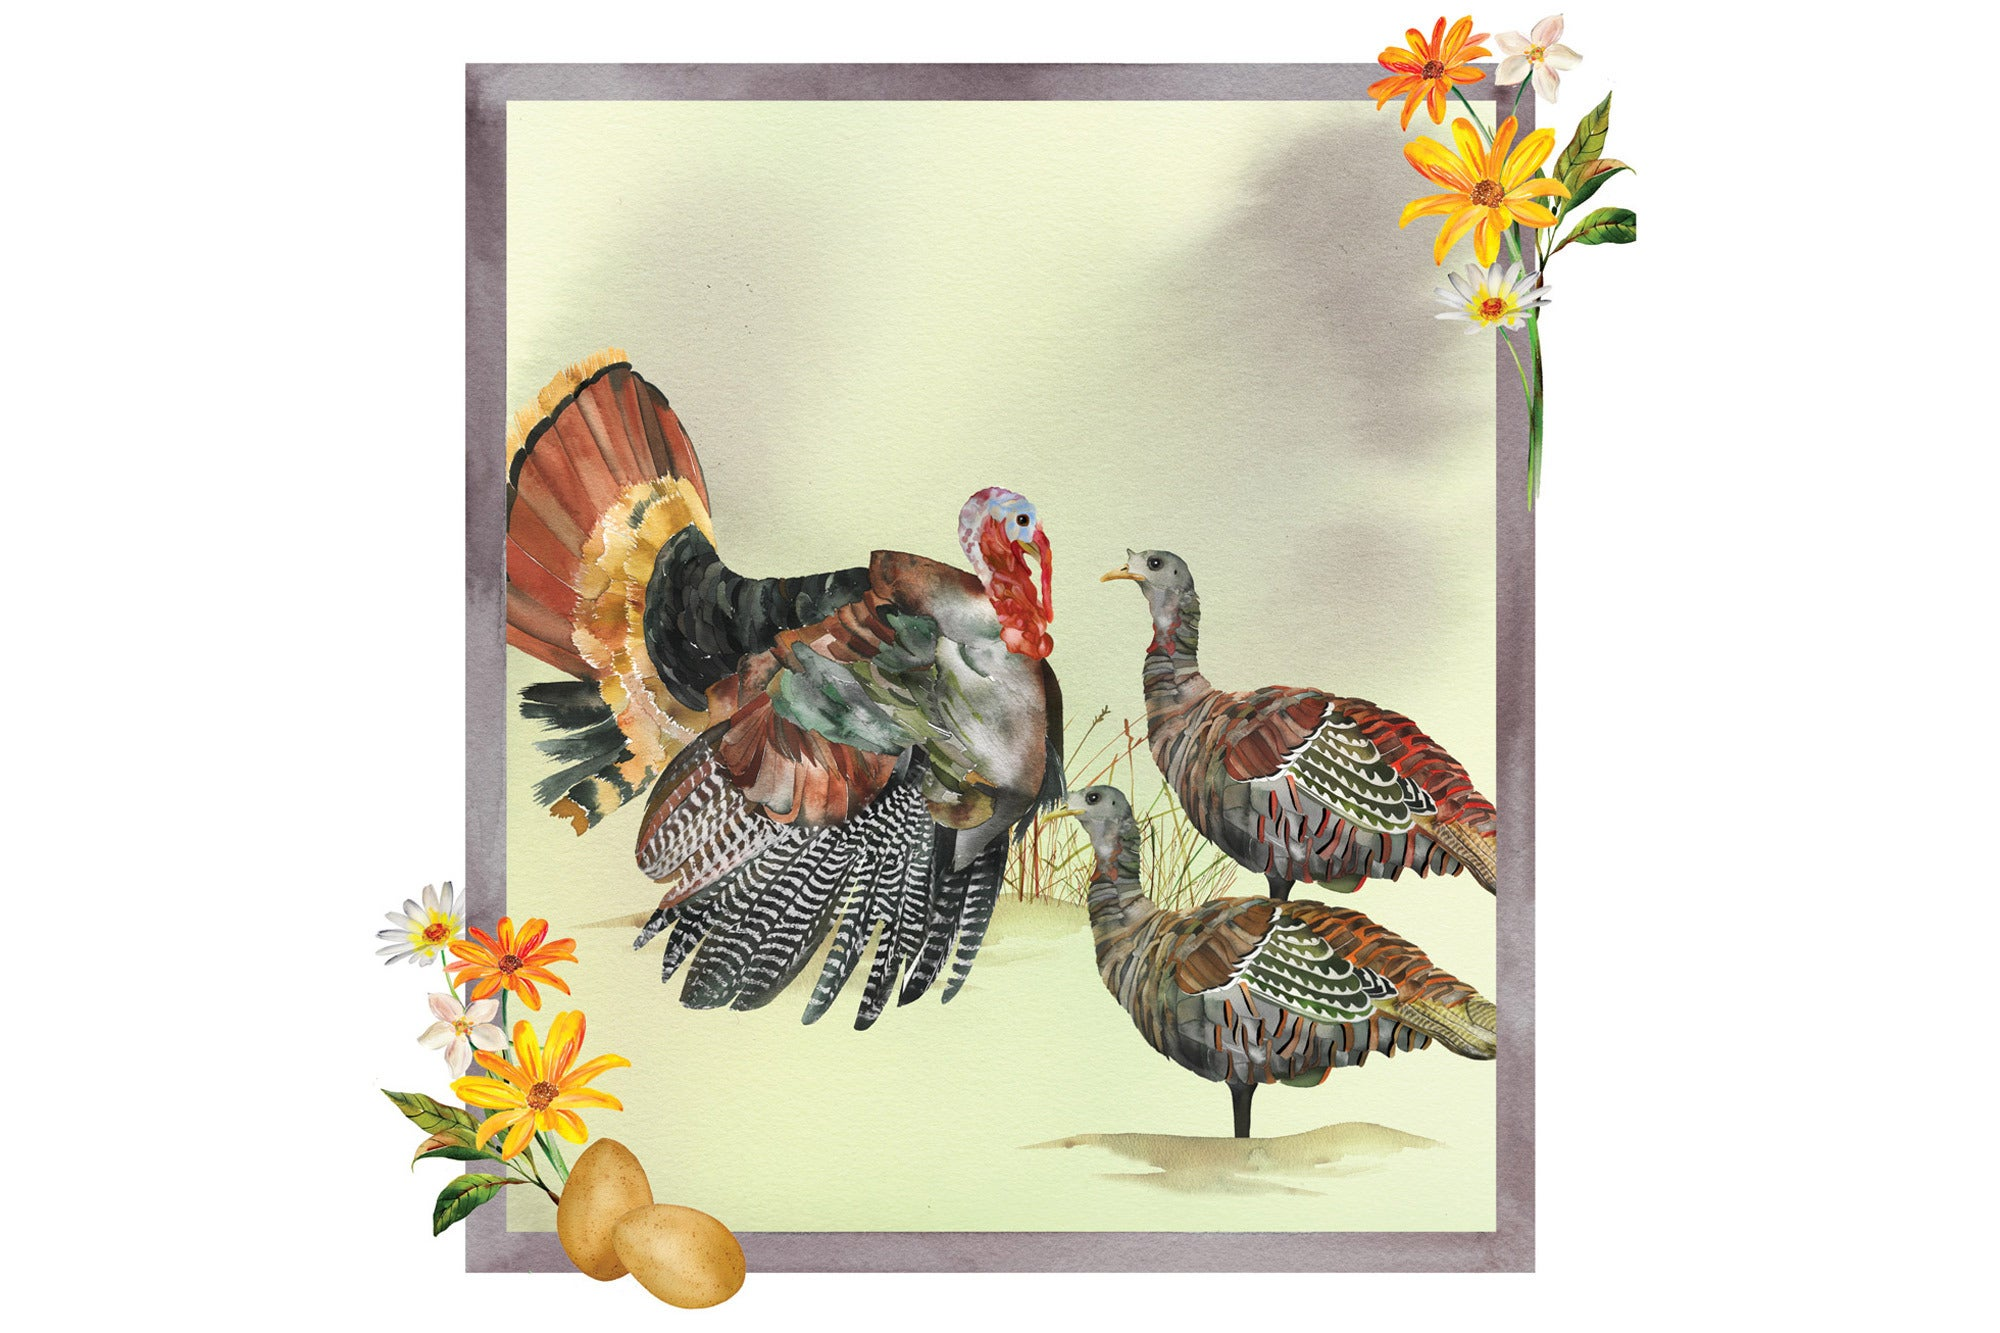 An illustration of a male wild turkey with two hens